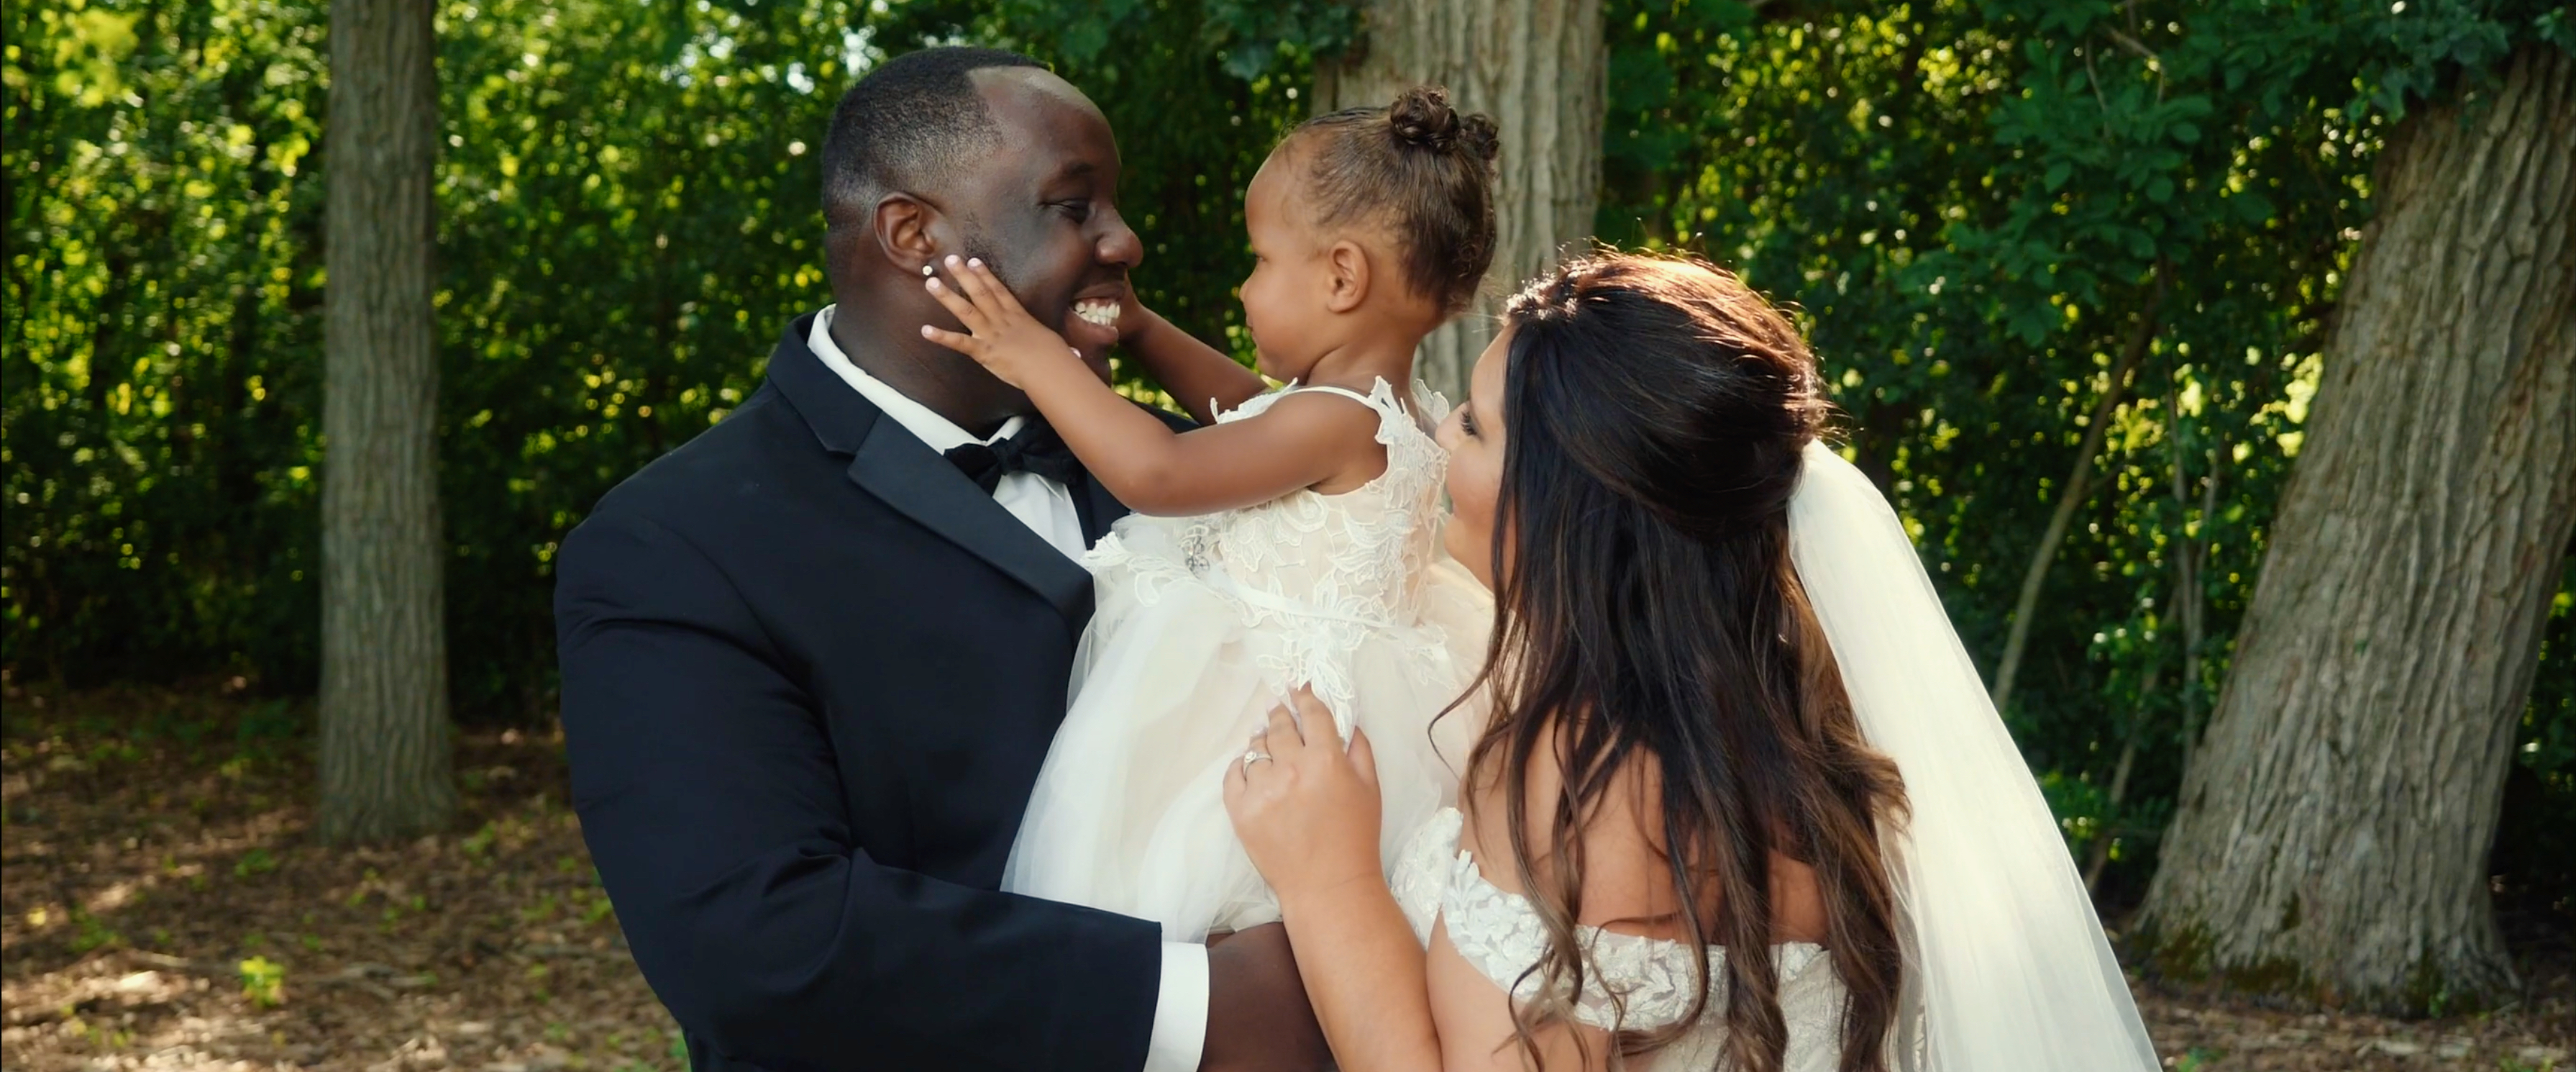 Interracial couple at wedding with their flower girl daughter